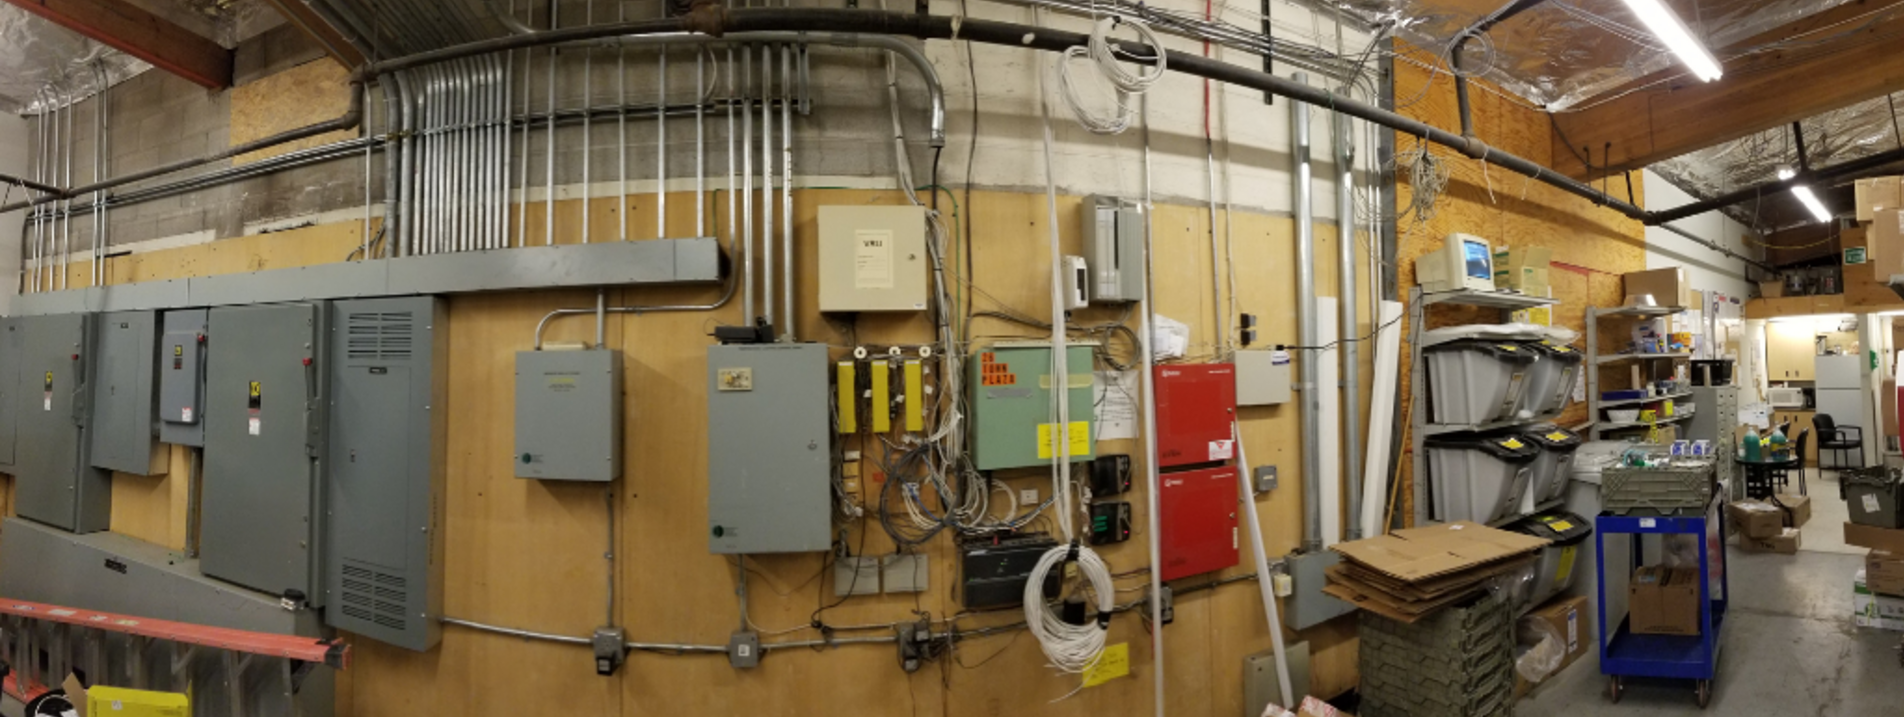 Commercial_Electrical_Electrician_Repair_Service_Loveland_Berthoud__Windsor_Longmont_Fort_Collins